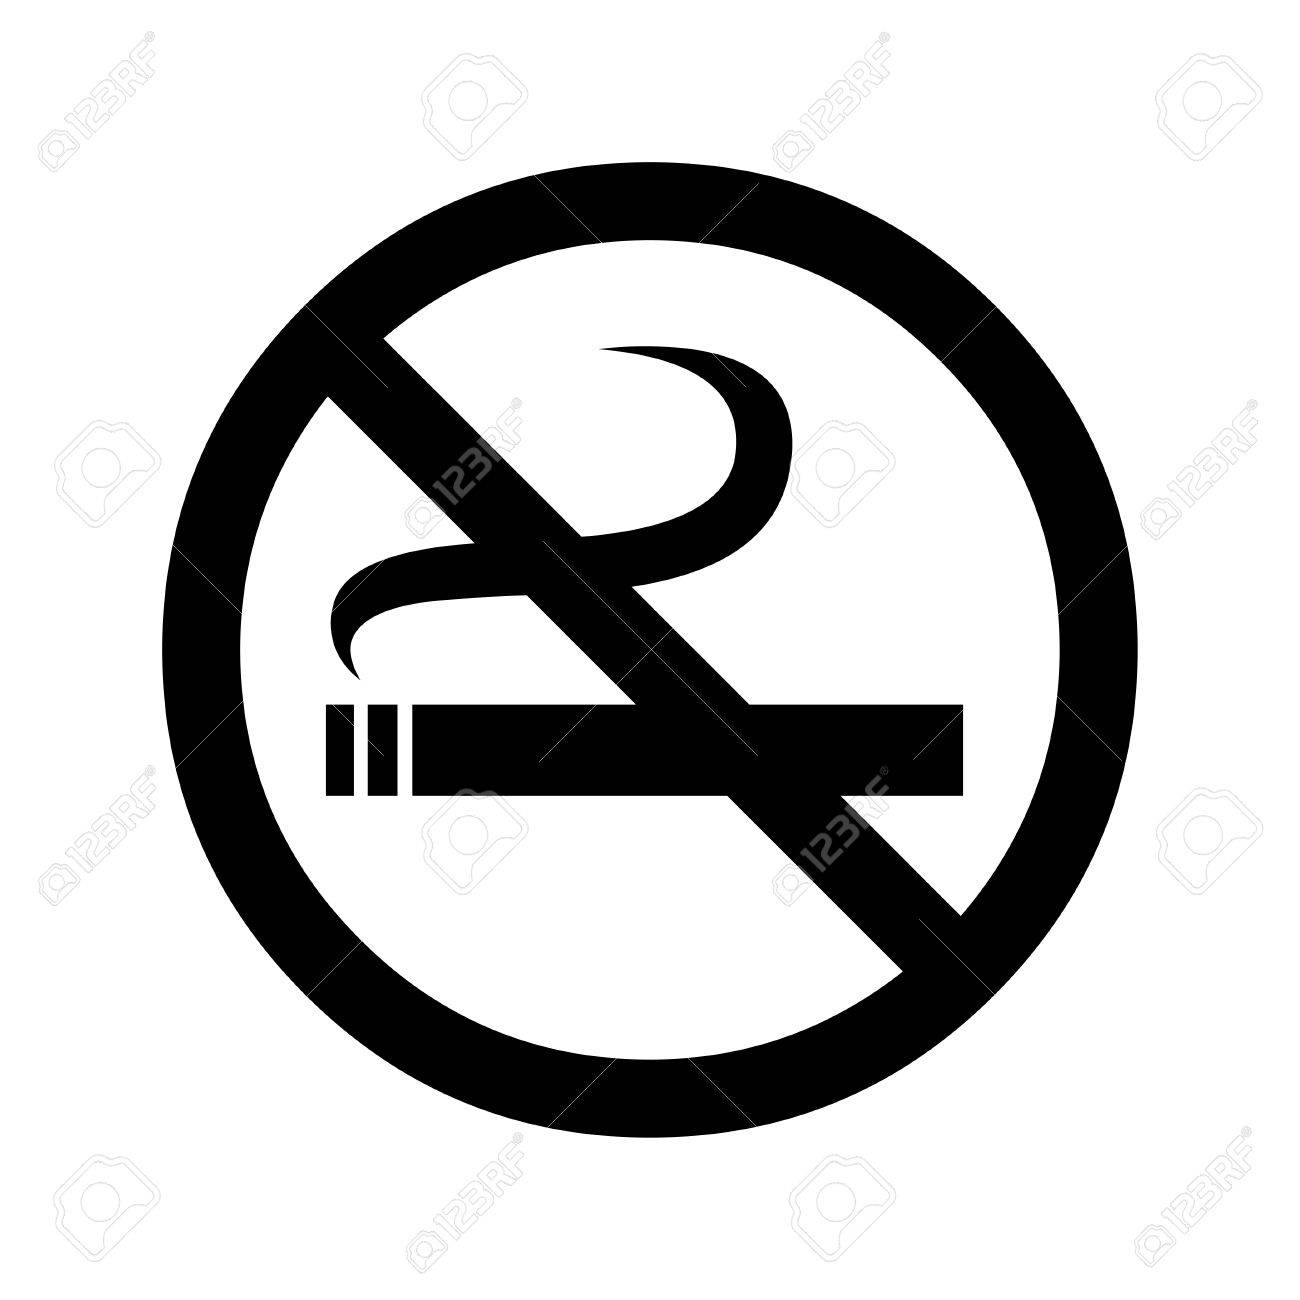 No smoking symbol royalty free cliparts vectors and stock no smoking symbol stock vector 40476004 buycottarizona Images